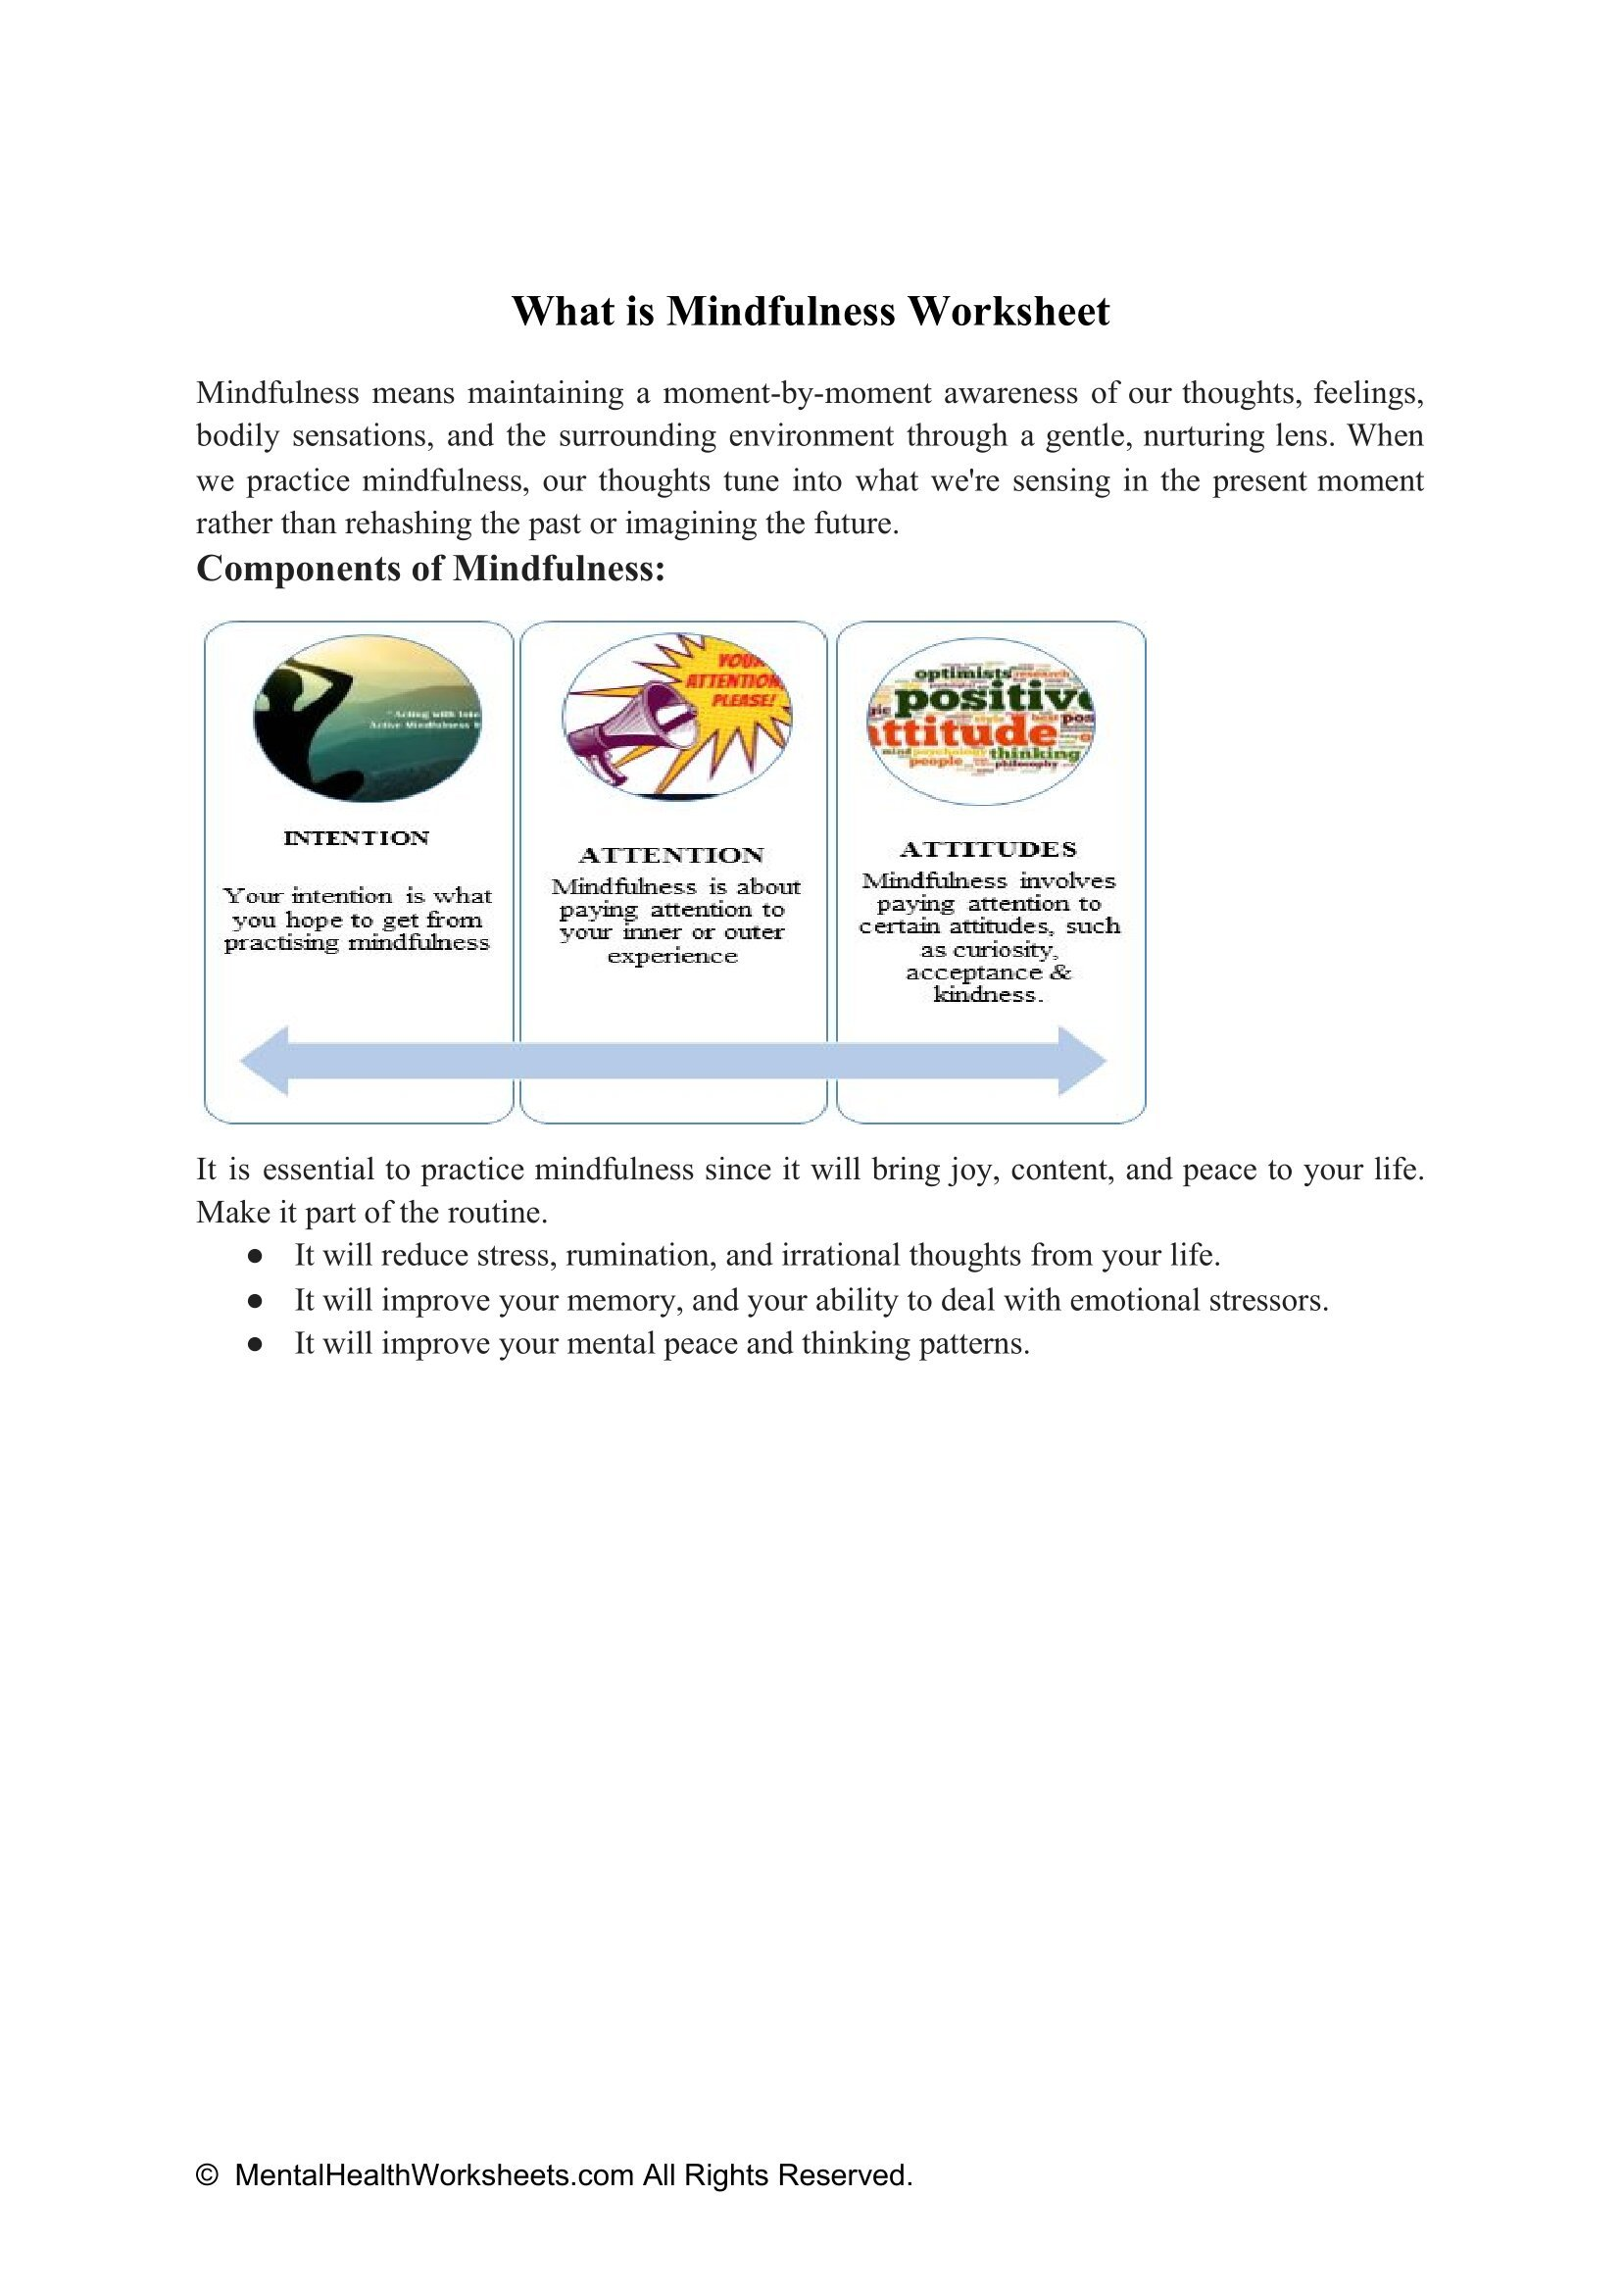 What is Mindfulness Worksheet